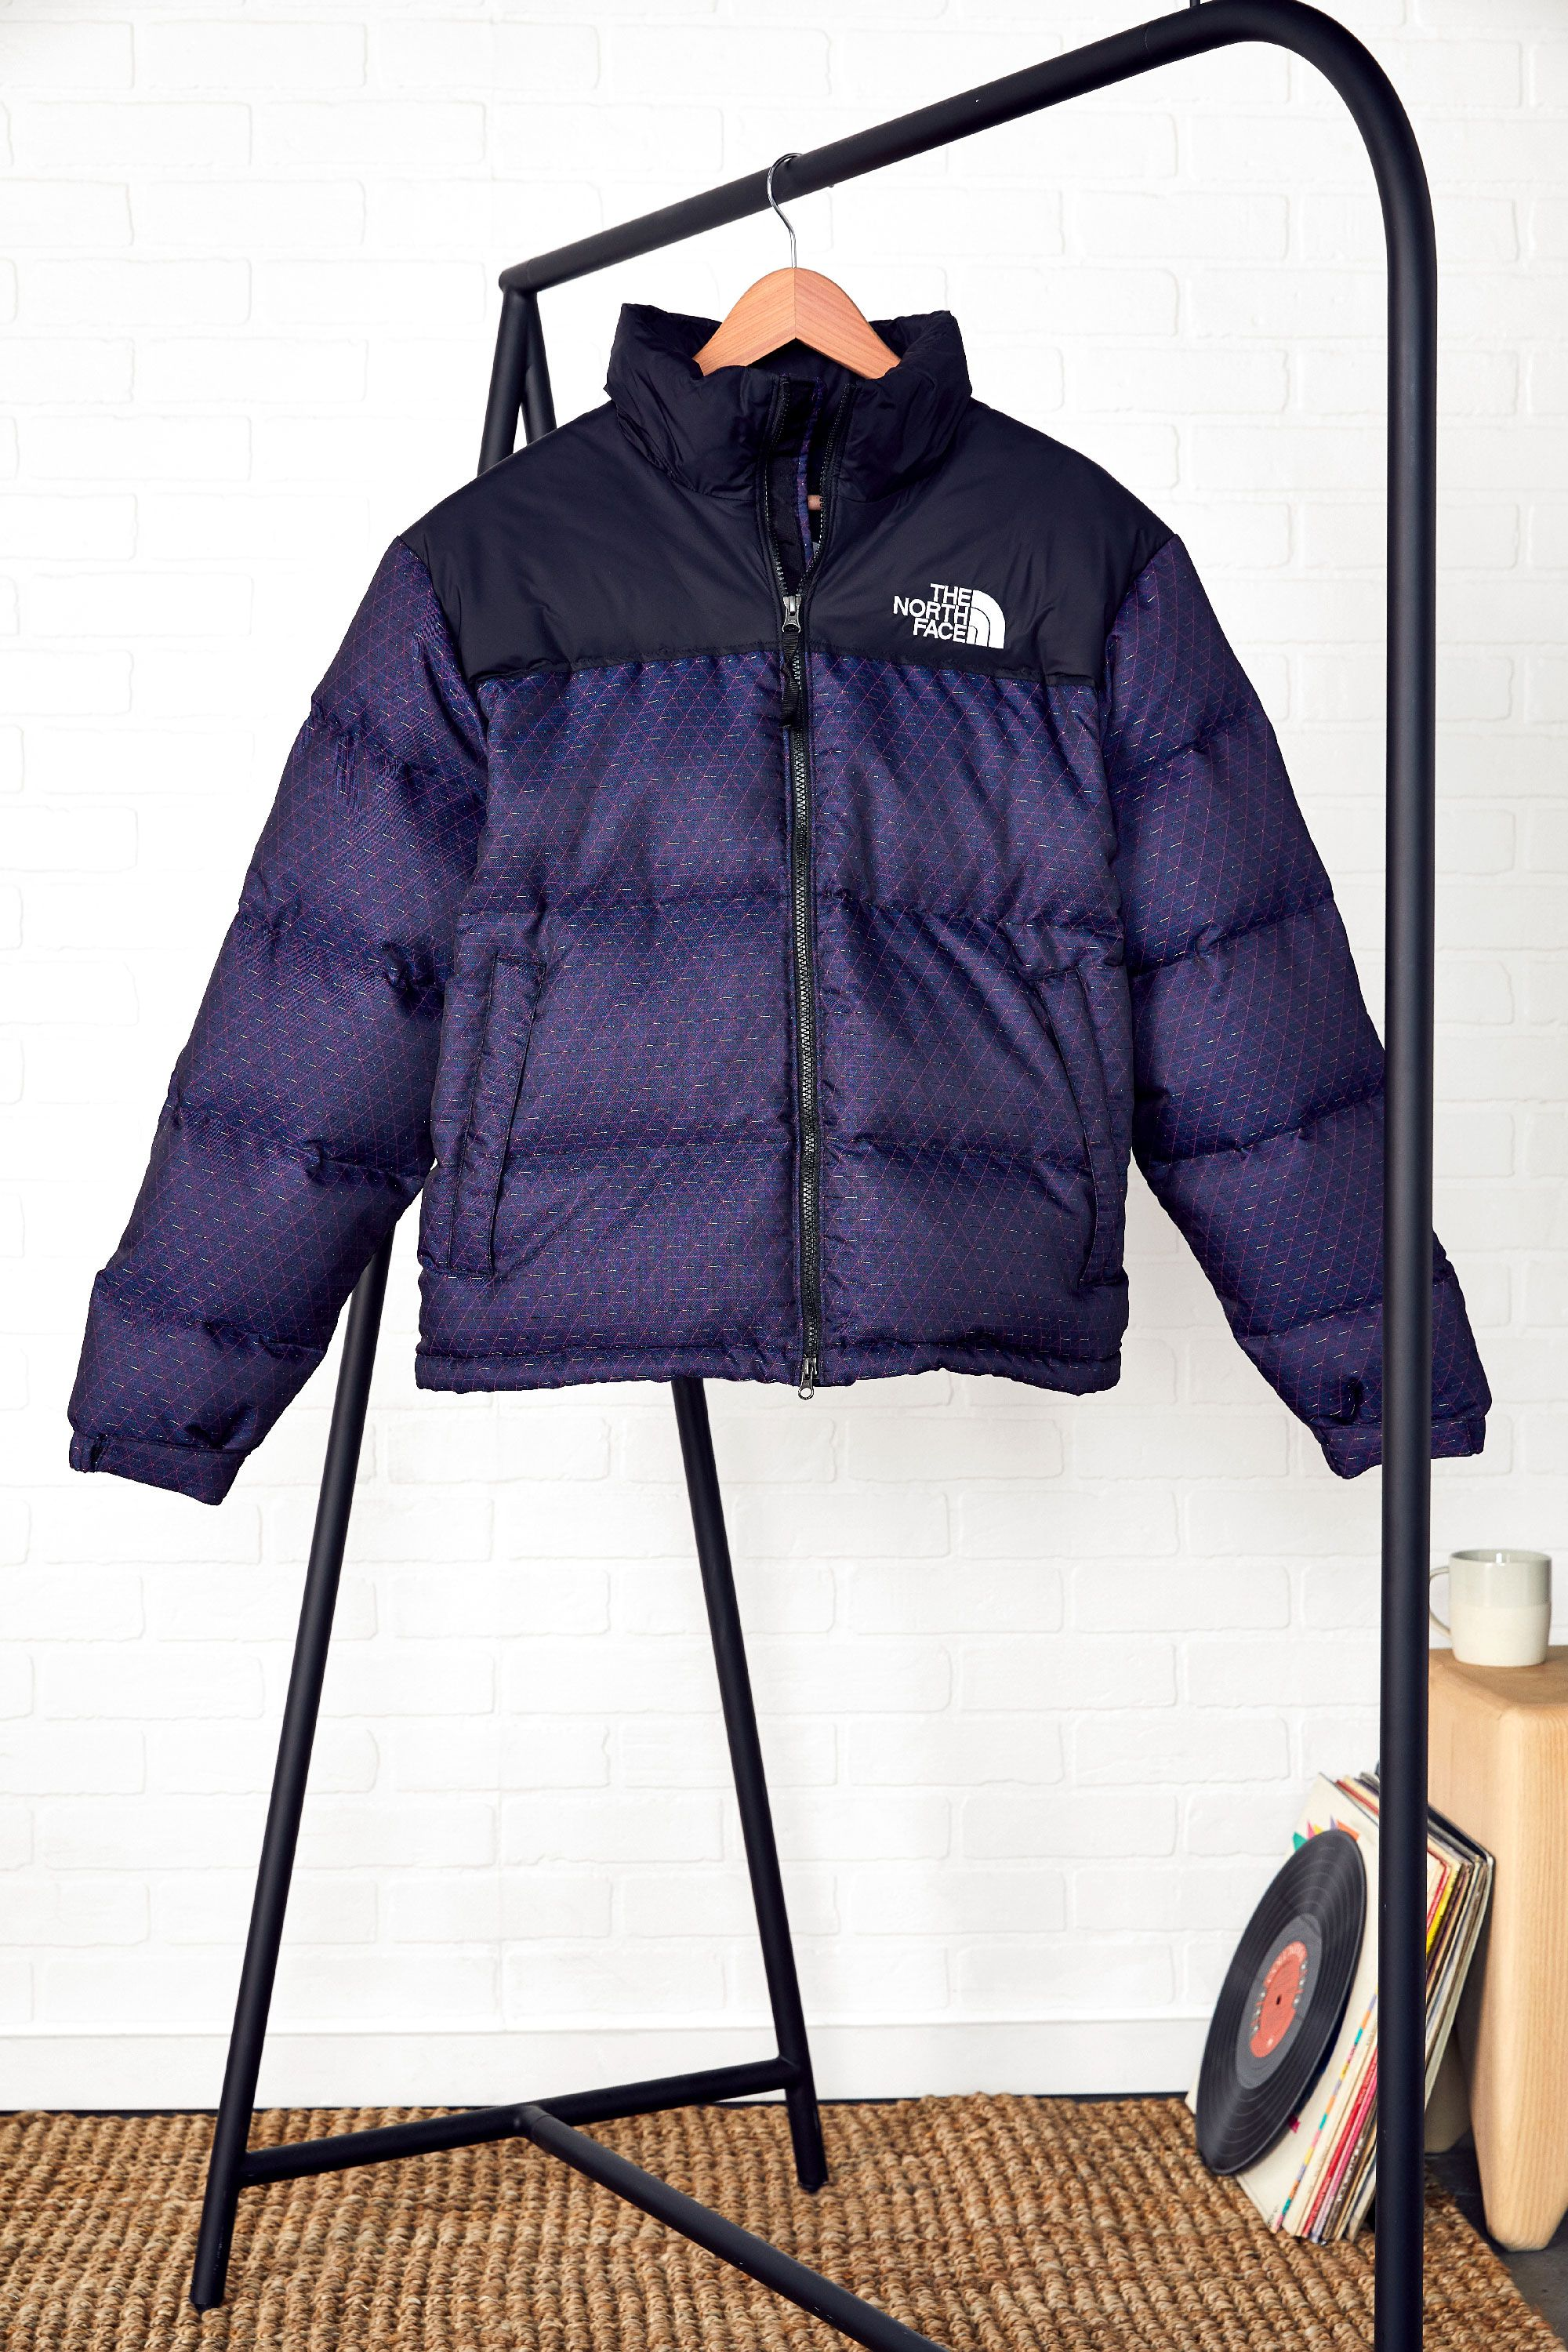 064cedcc7 The Upgraded North Face Puffer Jacket That's Not Sold Out—Yet